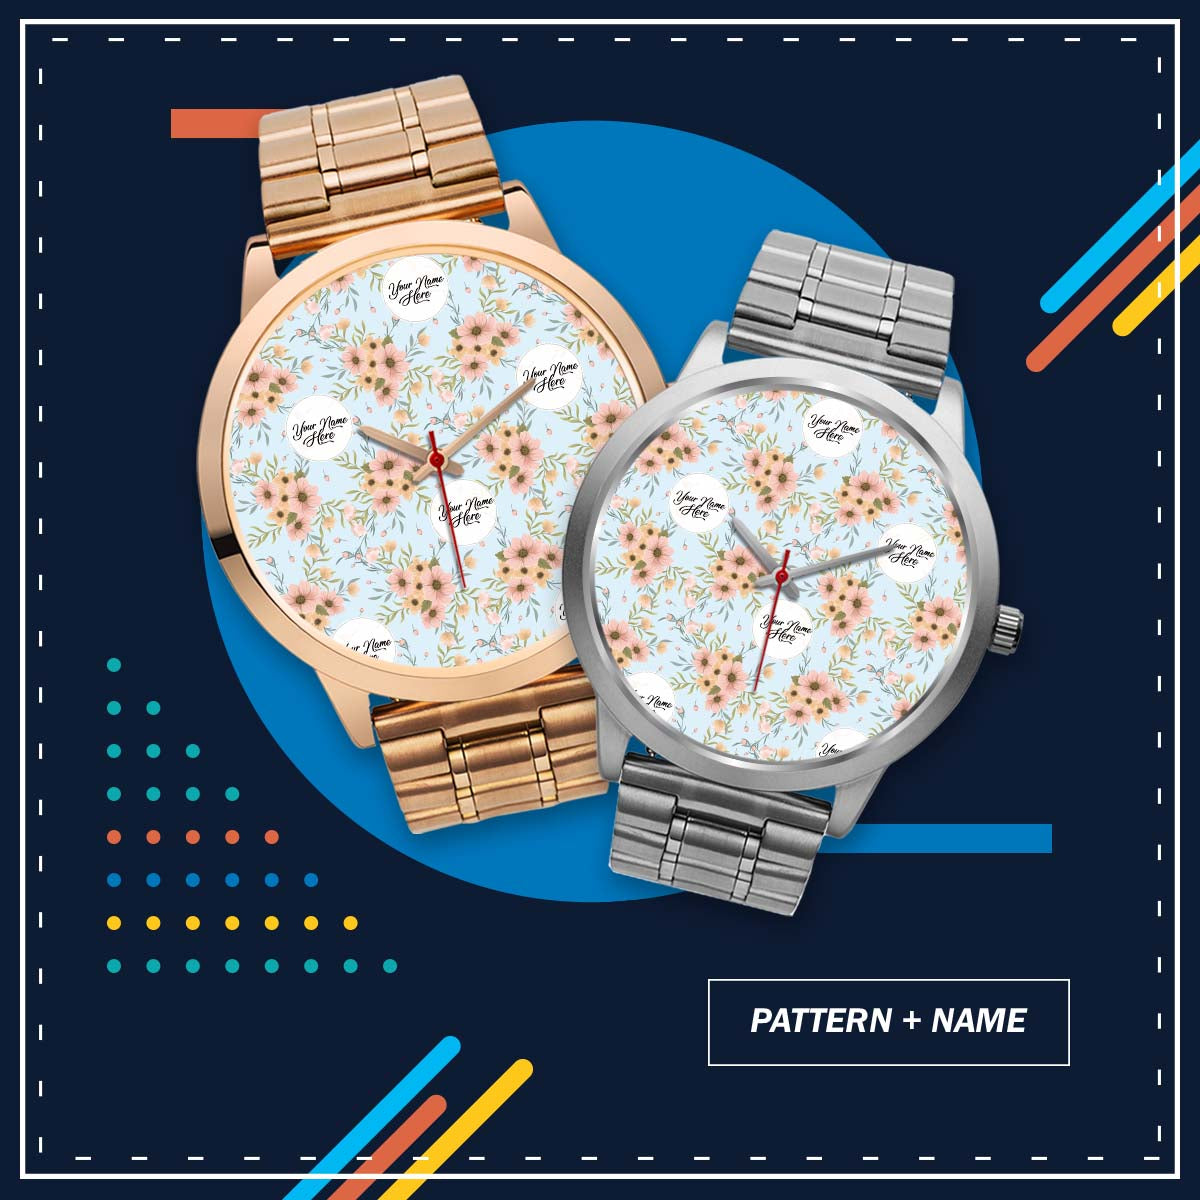 PERSONALIZED watch - your pattern & name